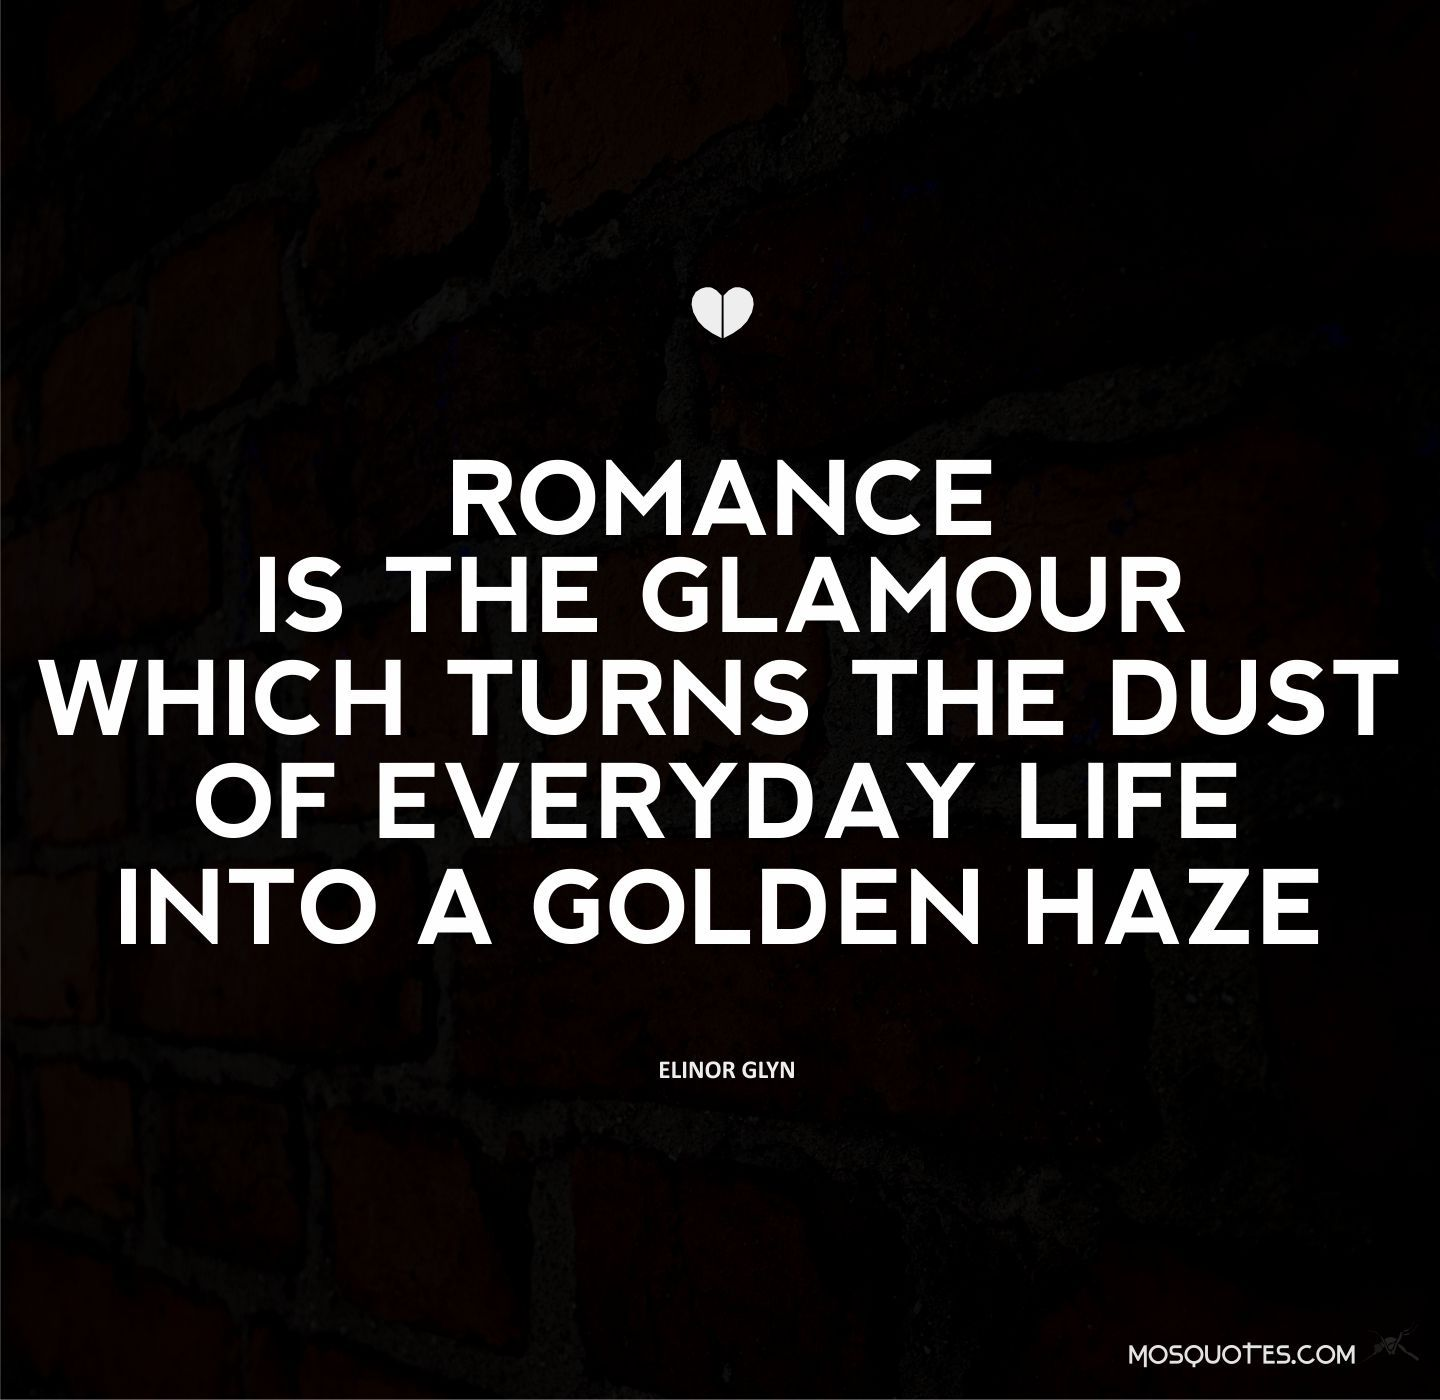 Romantic Quote: Romance Quotes Romance Is The Glamour Which Turns The Dust